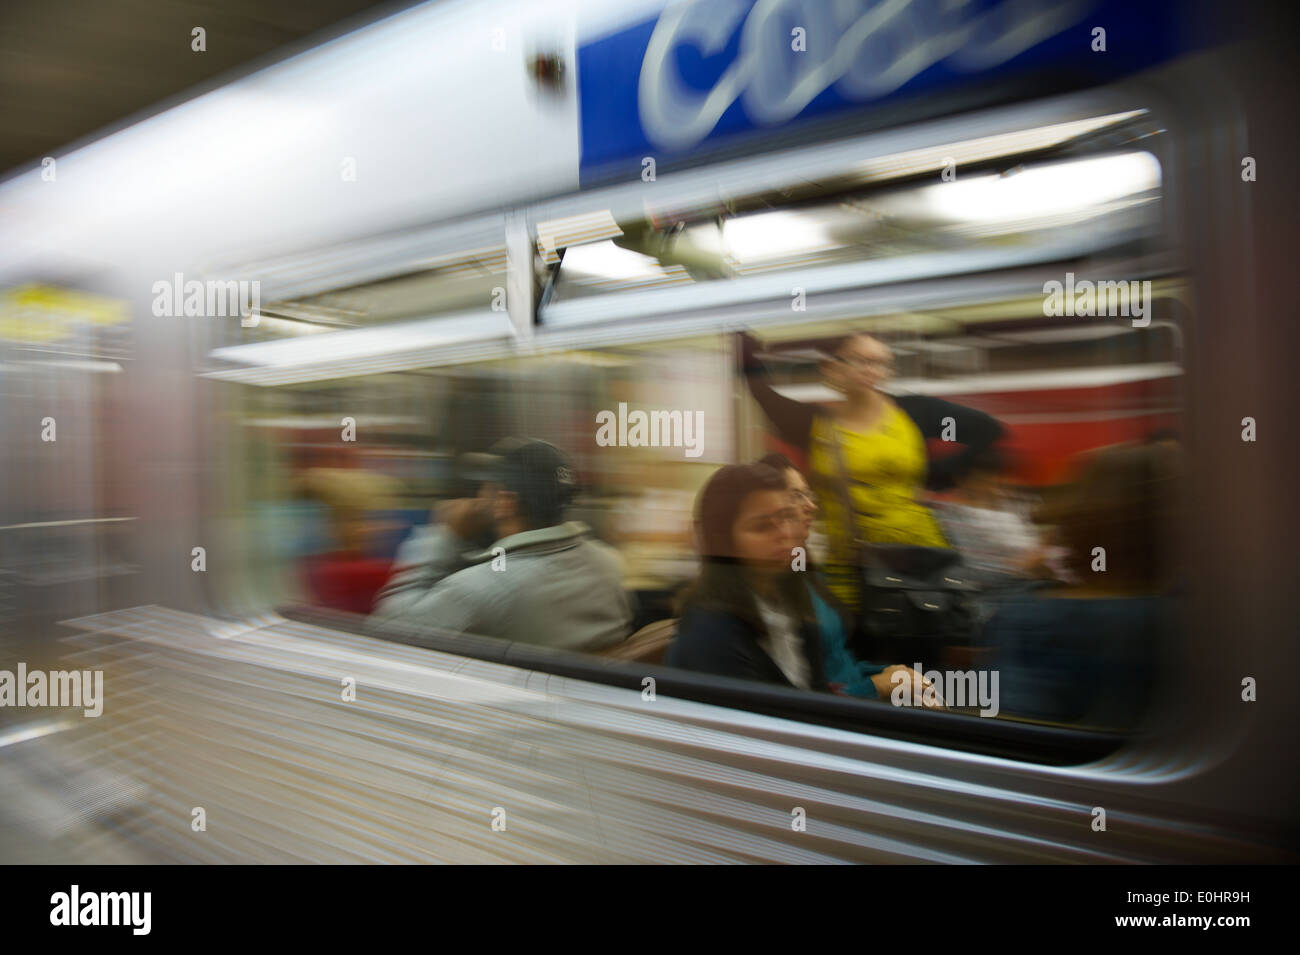 SAO PAULO, BRAZIL - SEPTEMBER 28, 2013: Commuters ride the Metropolitano de Sao Paulo, which carries over 7 million passengers. - Stock Image